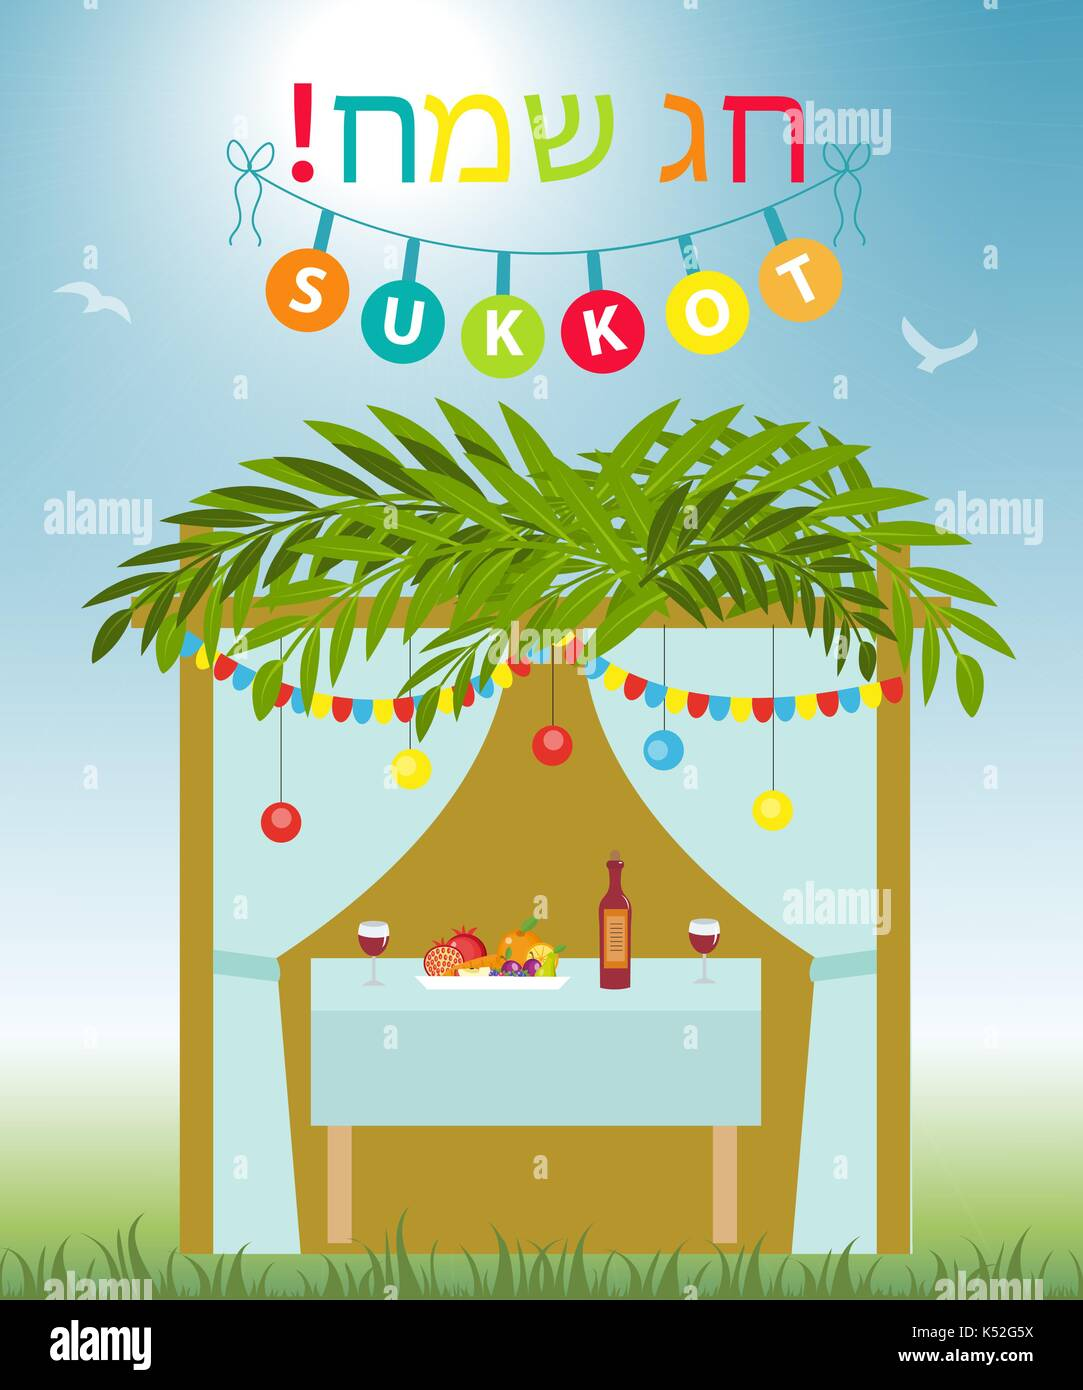 Sukkot israel stock photos sukkot israel stock images alamy greeting card happy sukkot with sukkah template for a poster flyer isolated on m4hsunfo